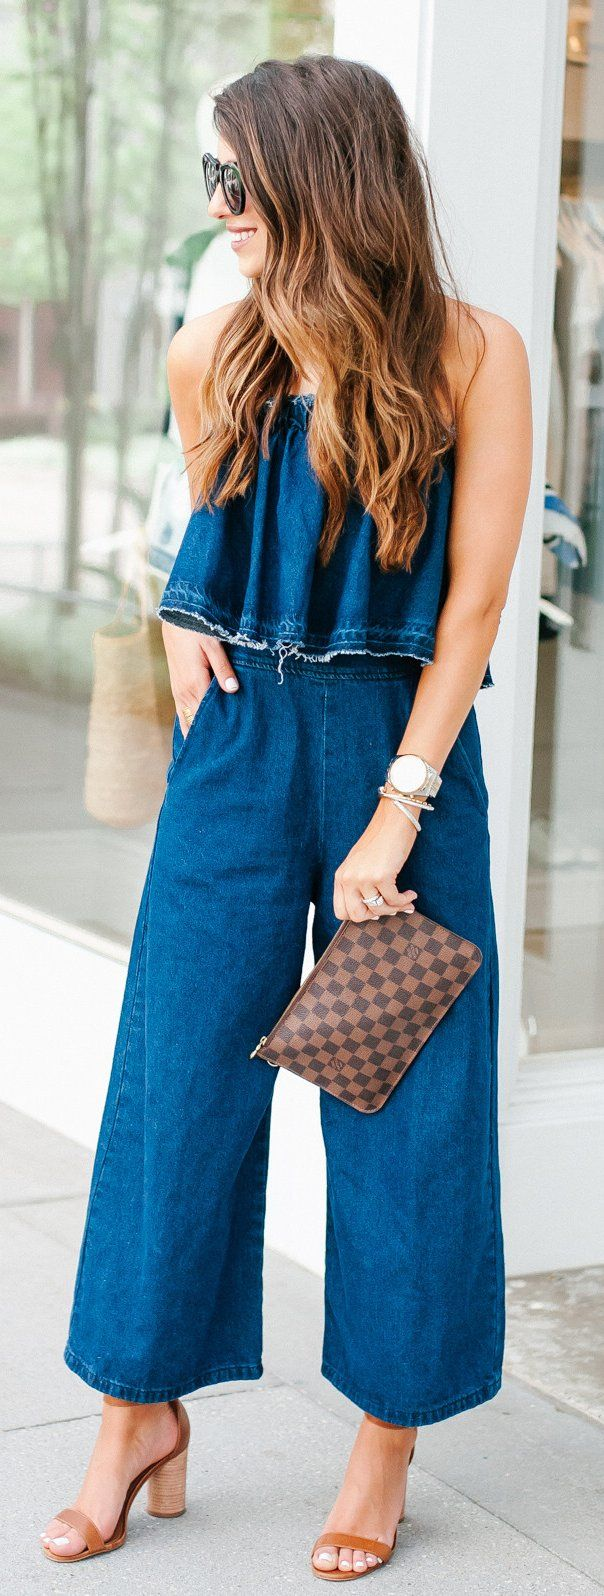 #summer #outfits Major Trends Happening Over On The Blog With This Denim On Denim, Culoutte, Jumper That Stole My (()). // Denim Jumper + Brown Sandals